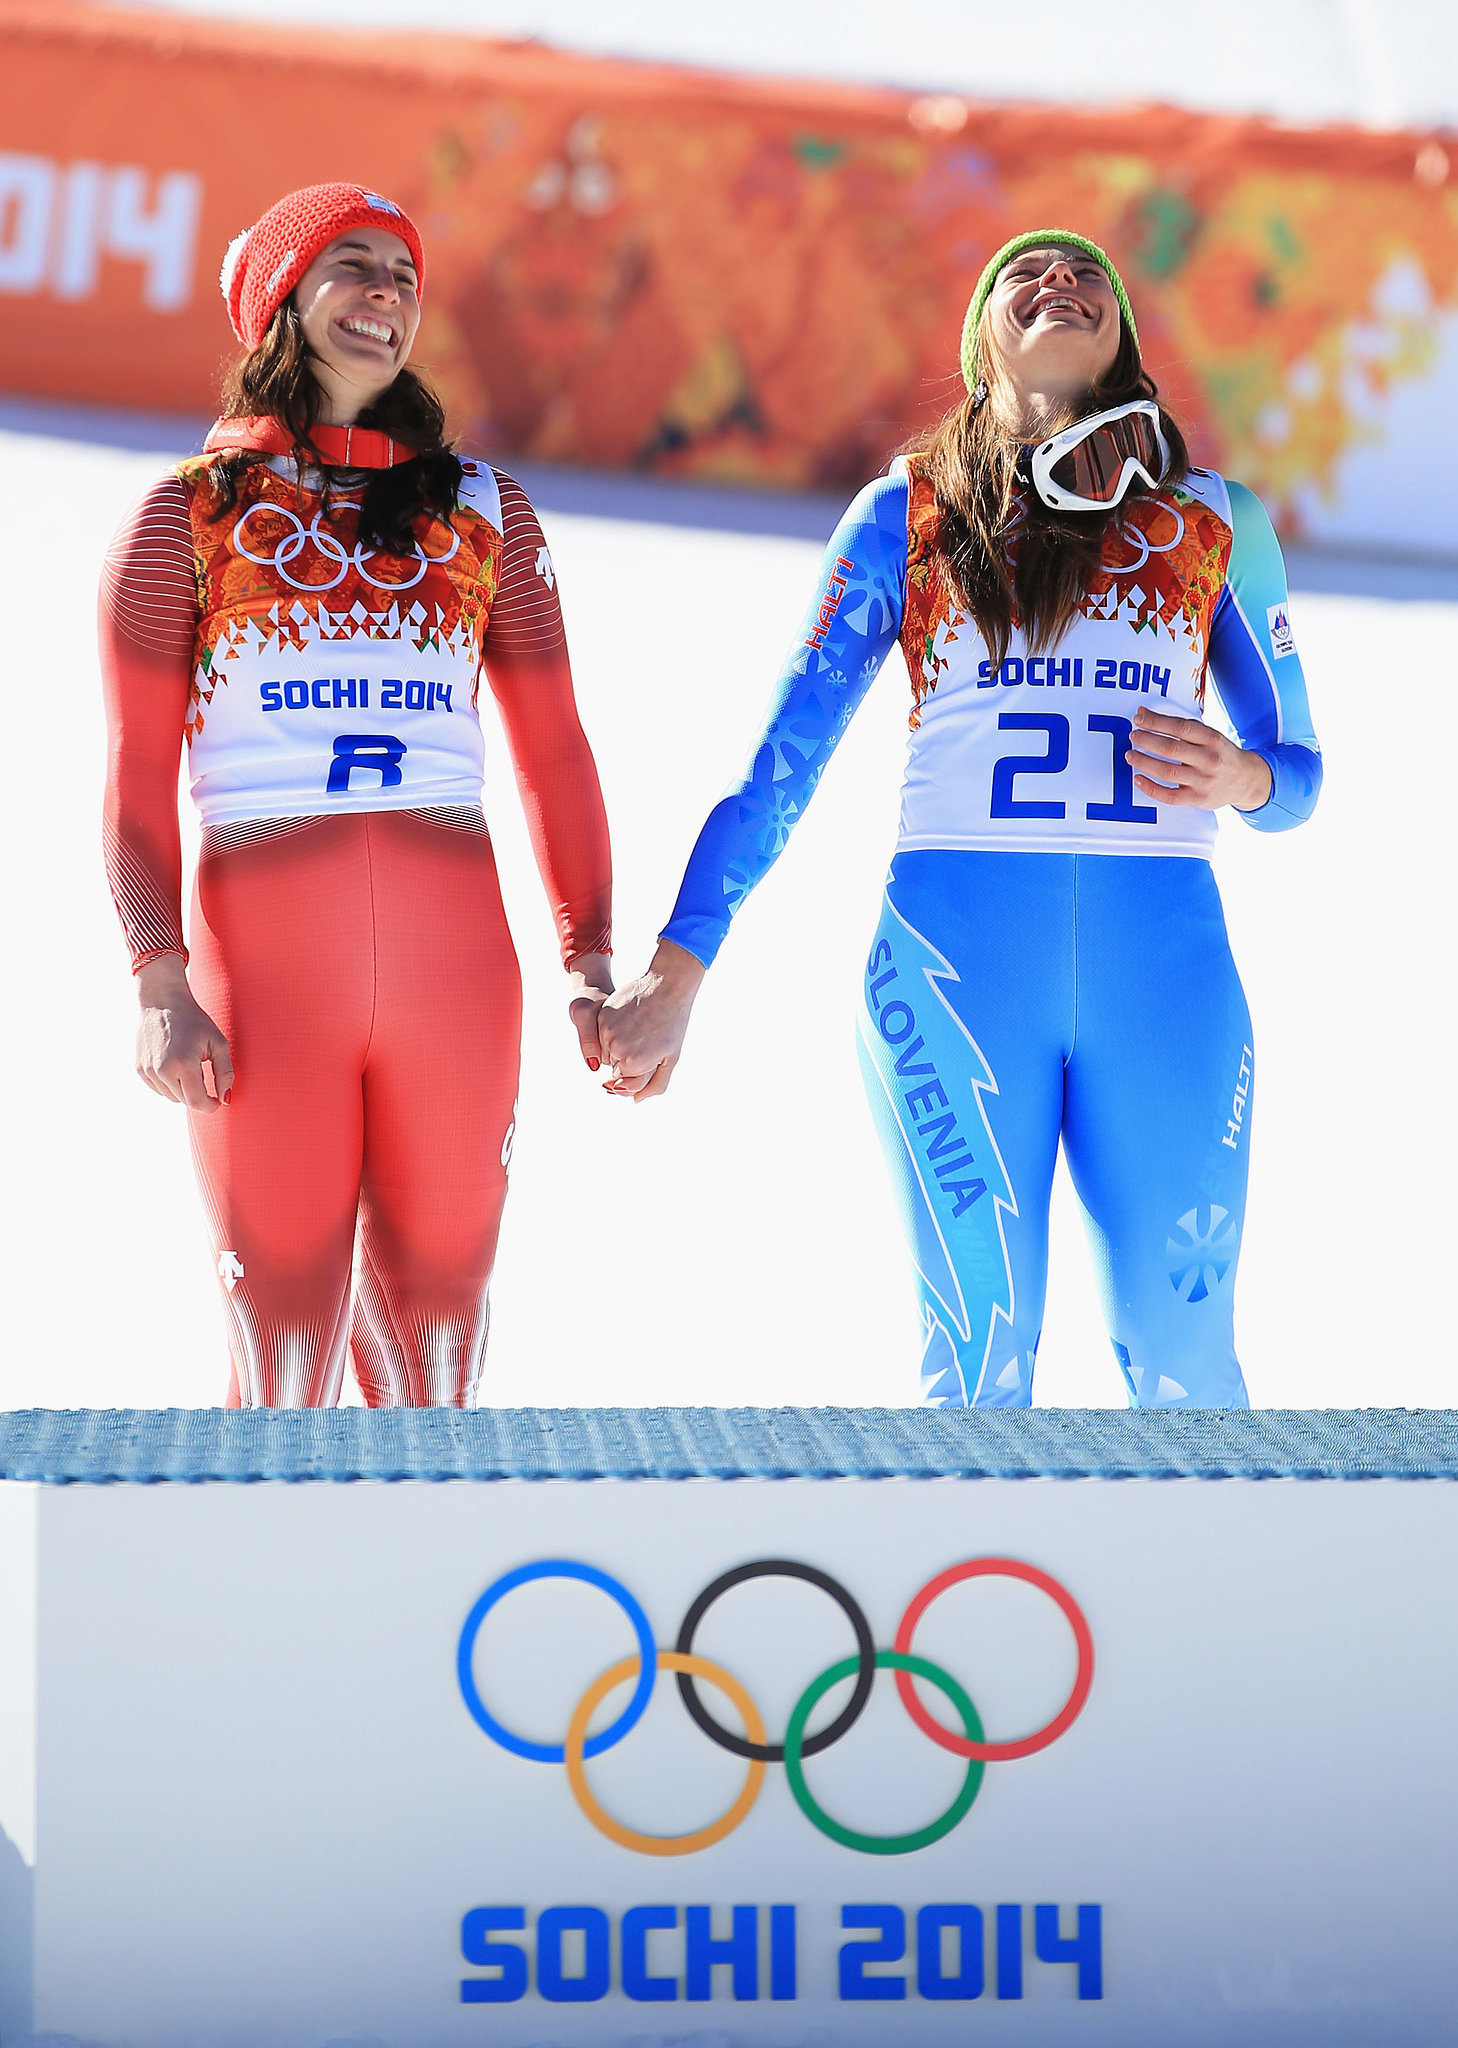 The women held hands at the podium, all smiles.